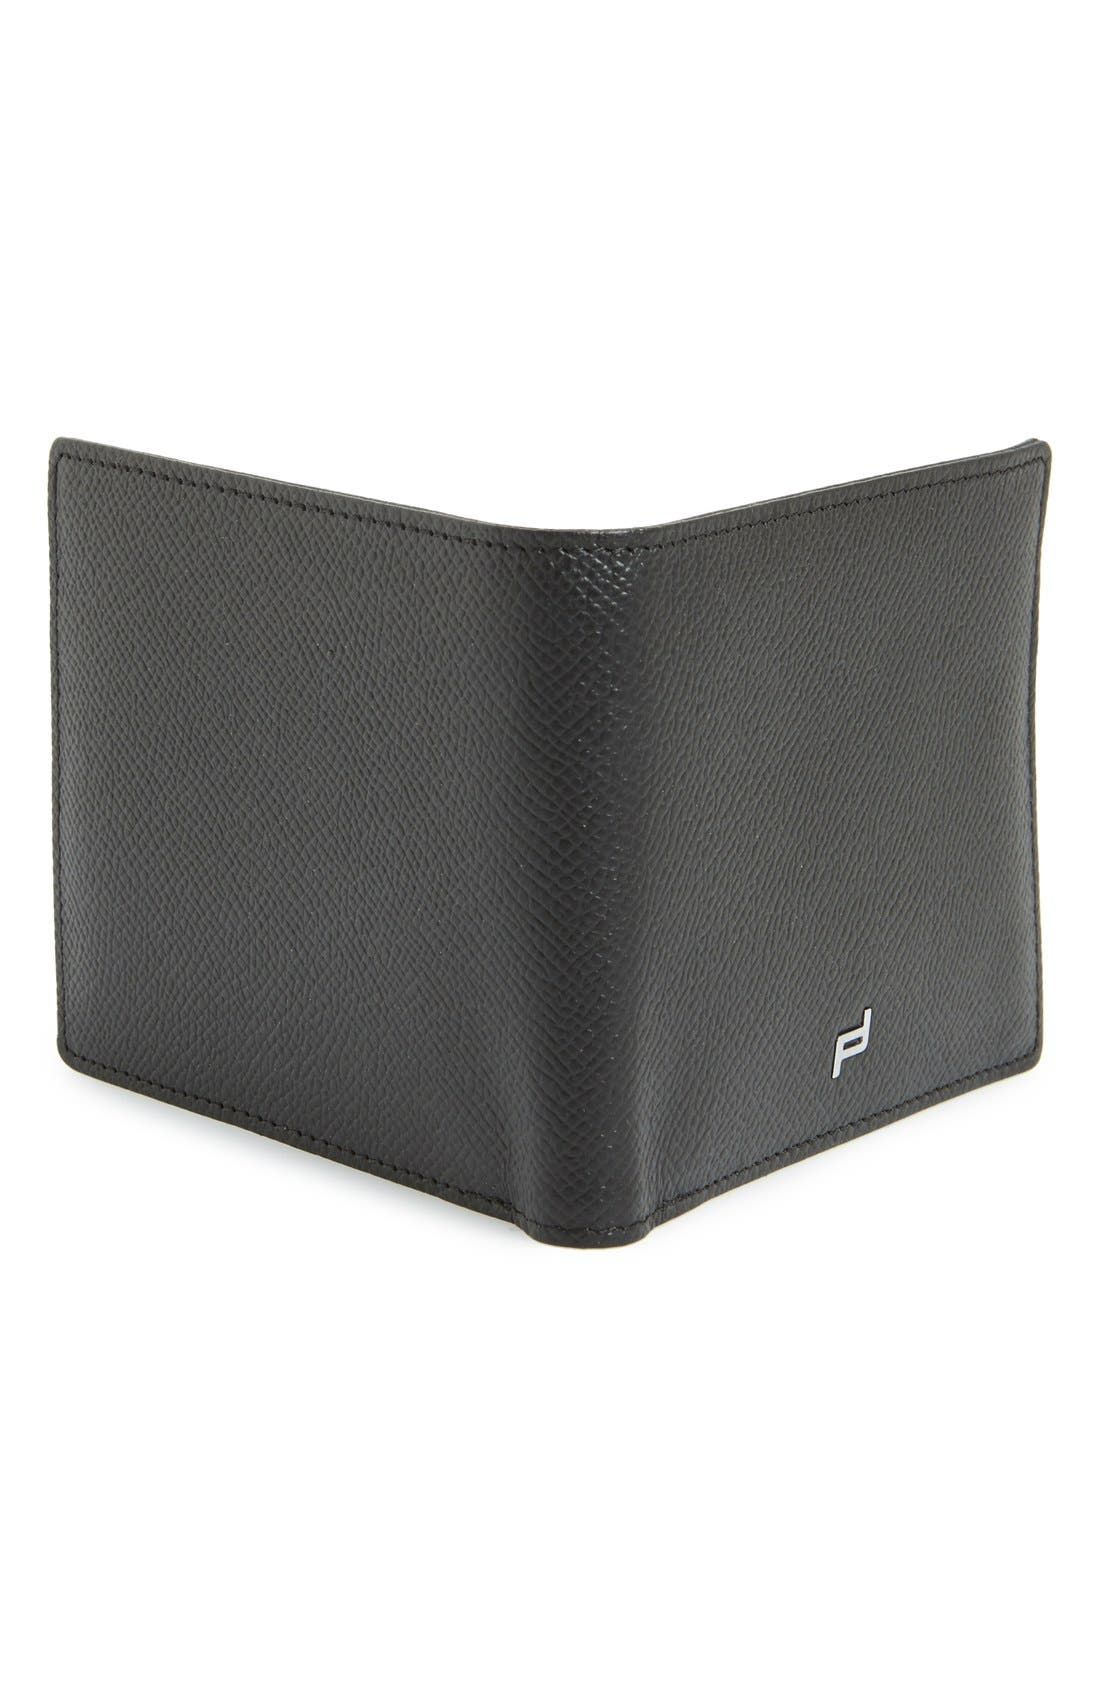 'FC 3.0'' Leather Bifold Wallet,                             Alternate thumbnail 3, color,                             Black